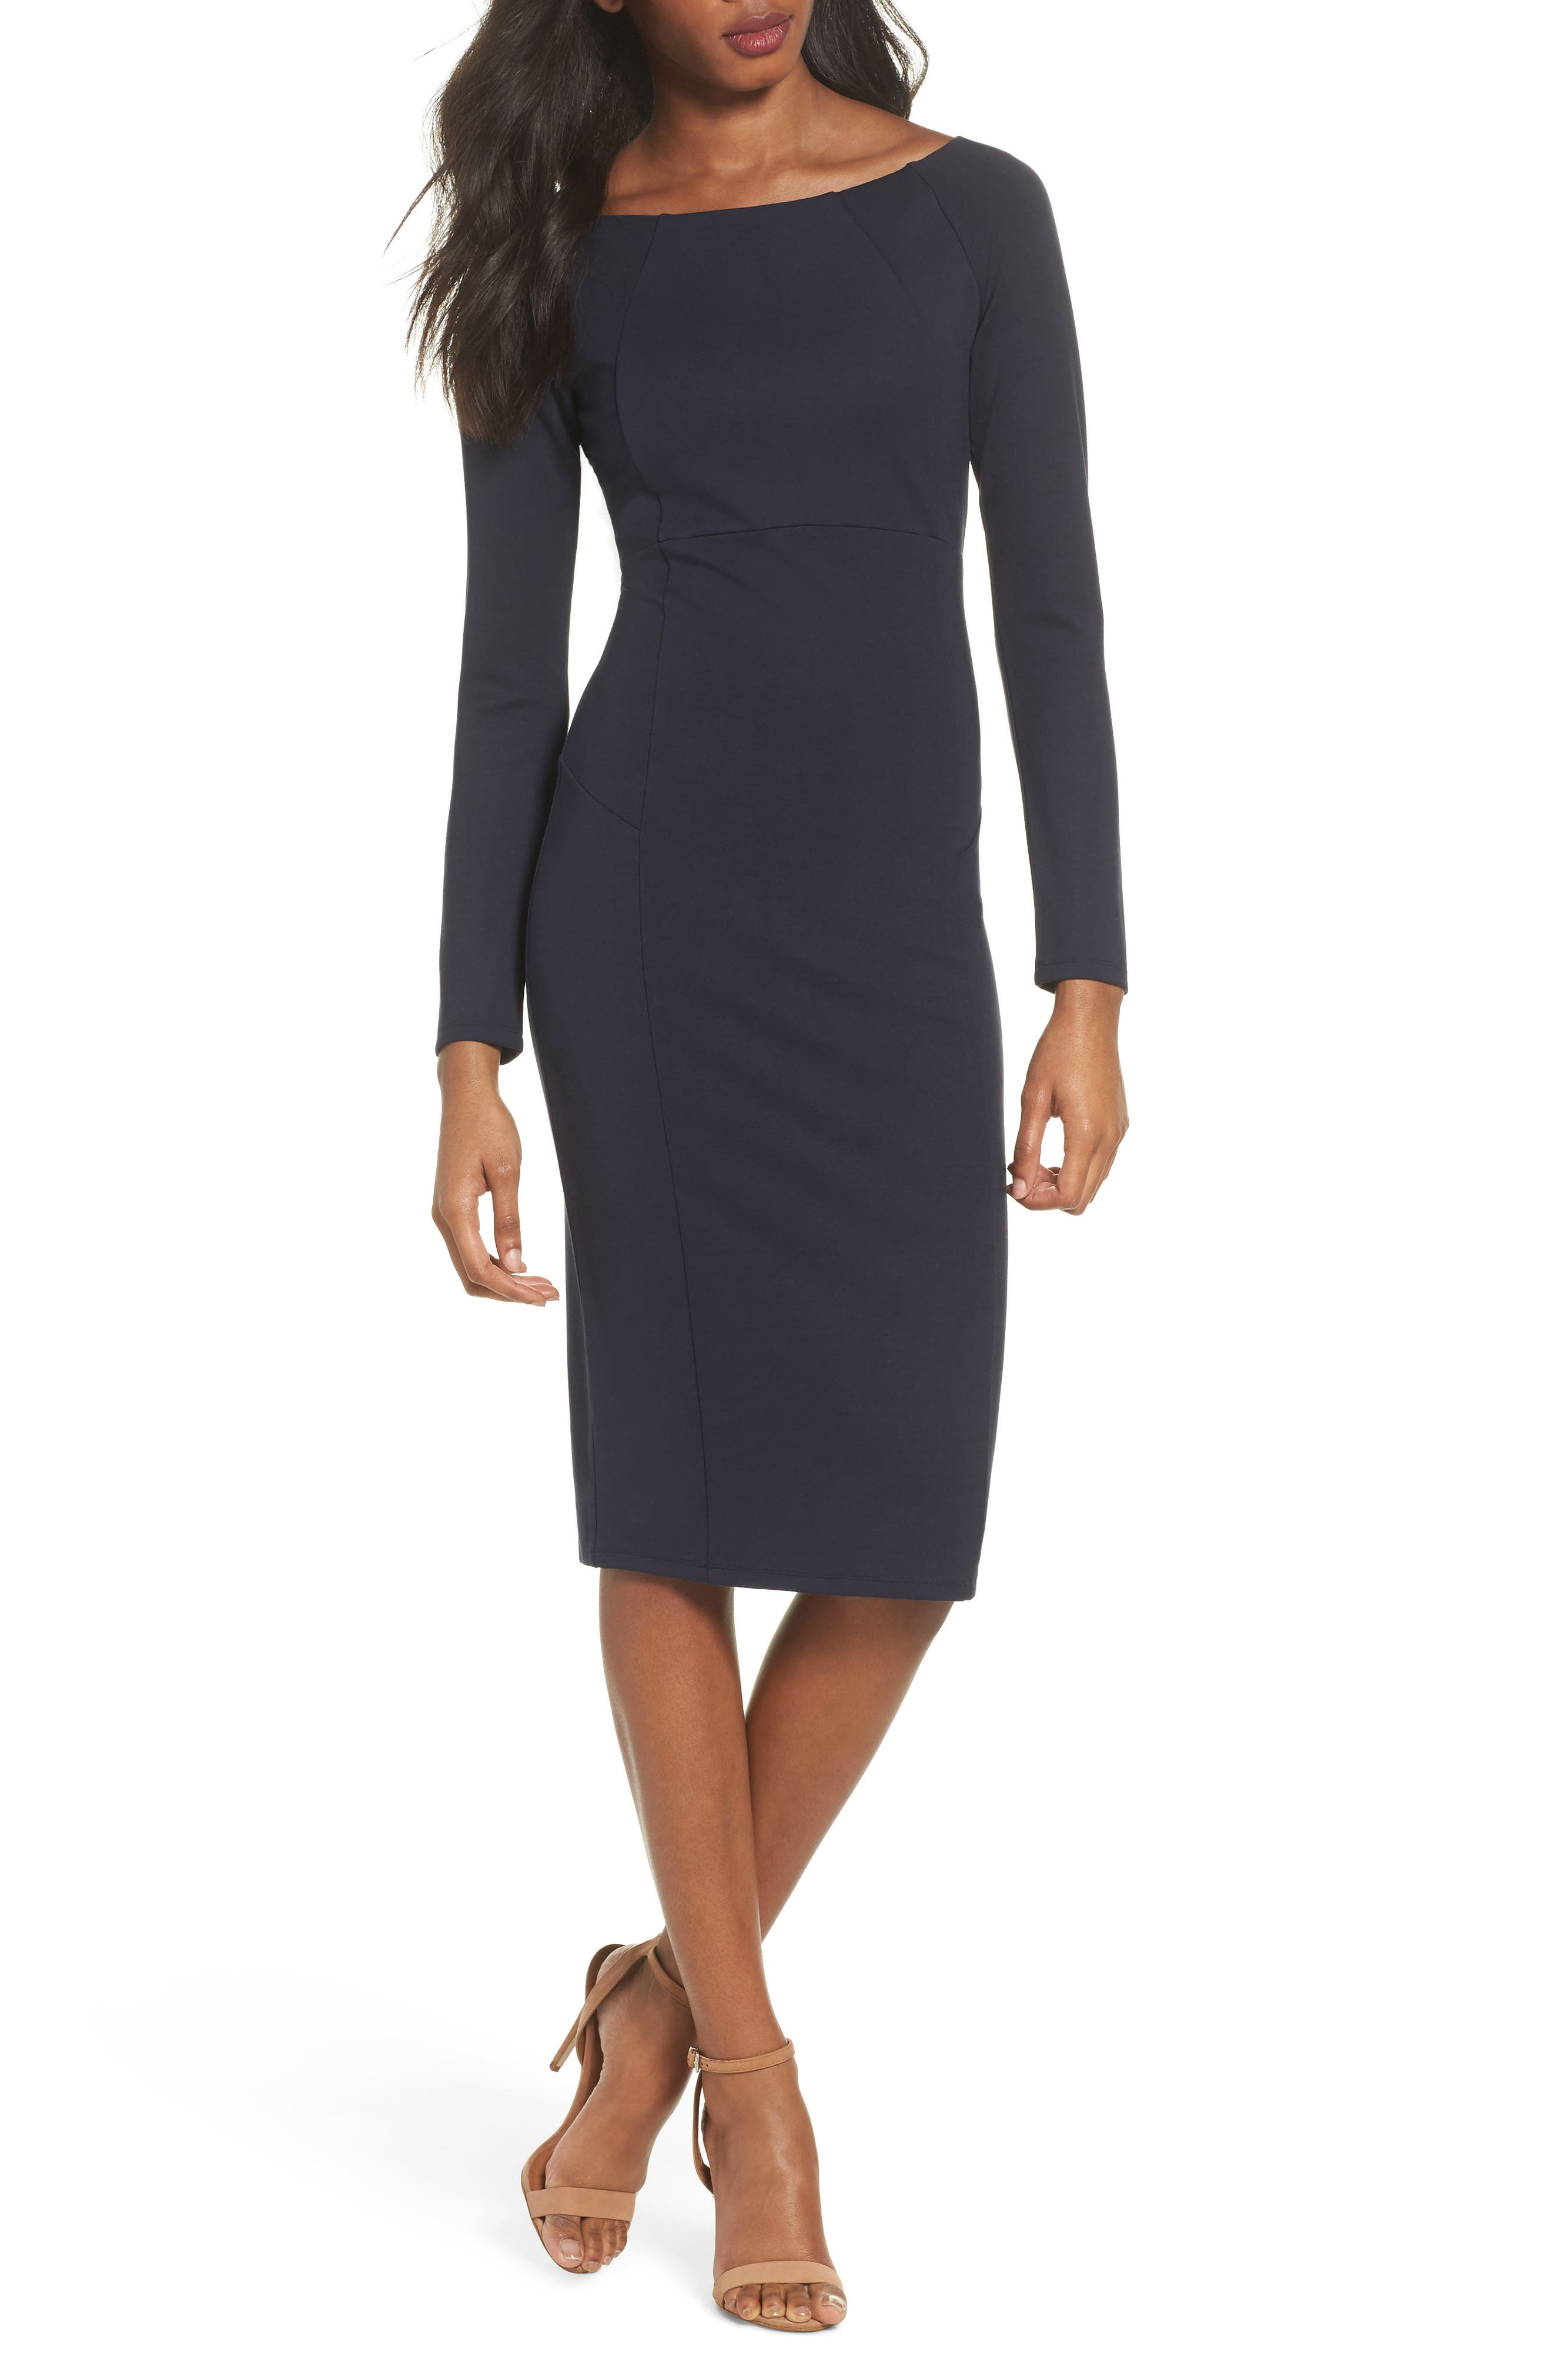 Maile Sheath Dress,                         Main,                         color, Navy